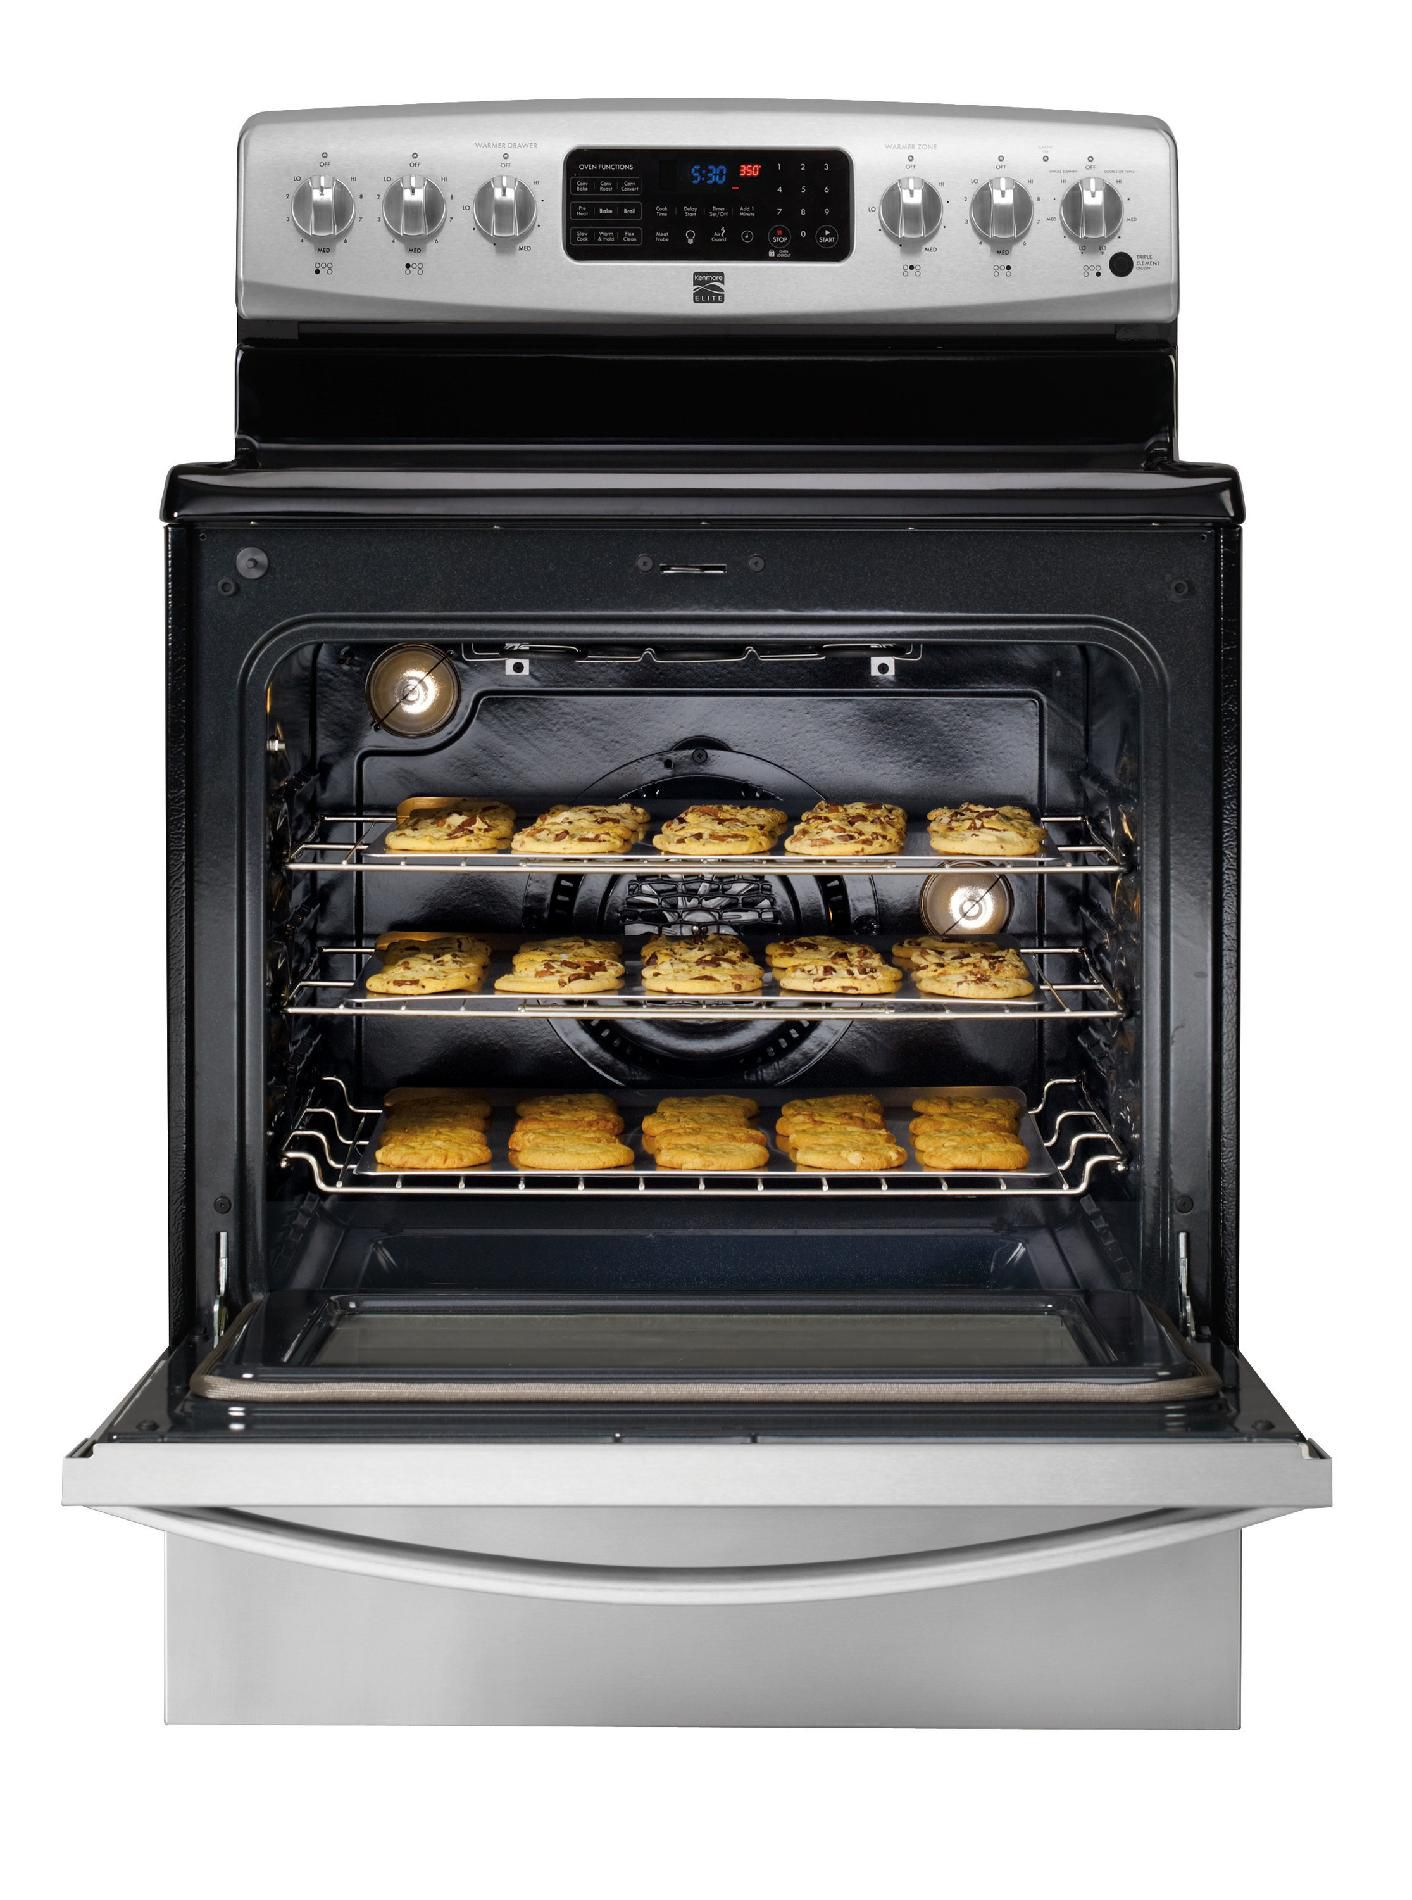 Kenmore Elite 5.8 cu. ft. Electric Range - Stainless Steel